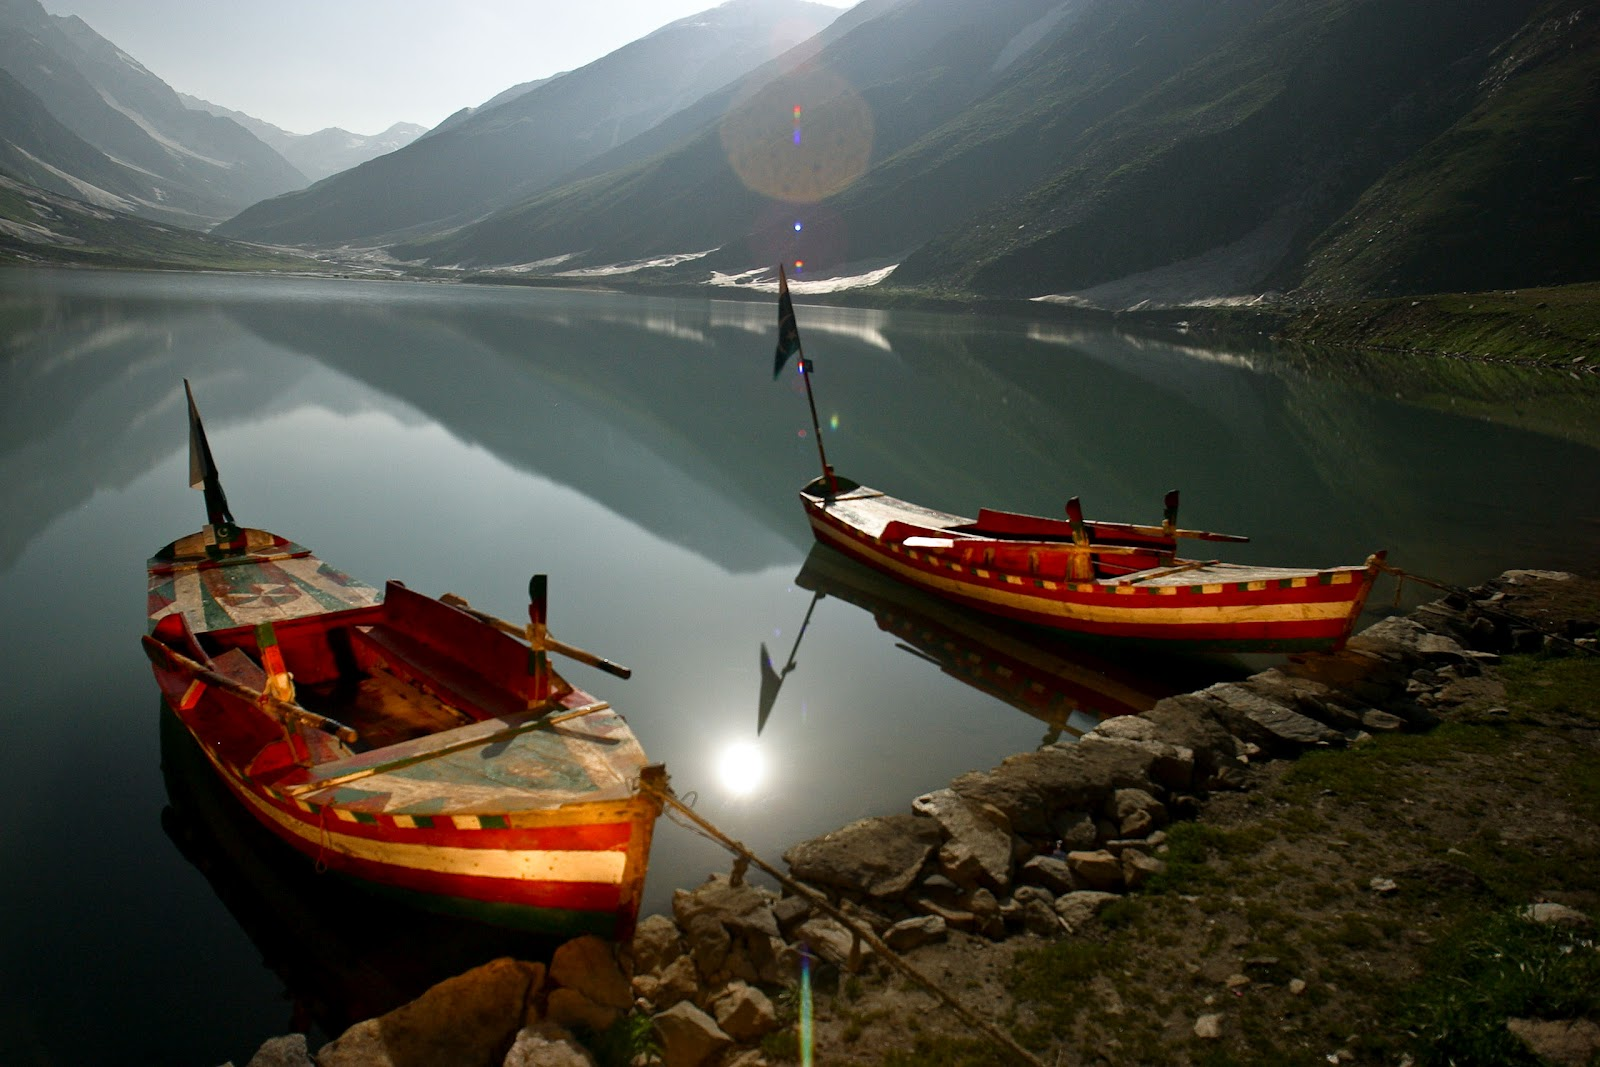 Jheel Saif Ul Malook Pakistan http://worldbeautifullplaces.blogspot.com/2012/03/beautiful-places-jheel-saif-ul-malook.html